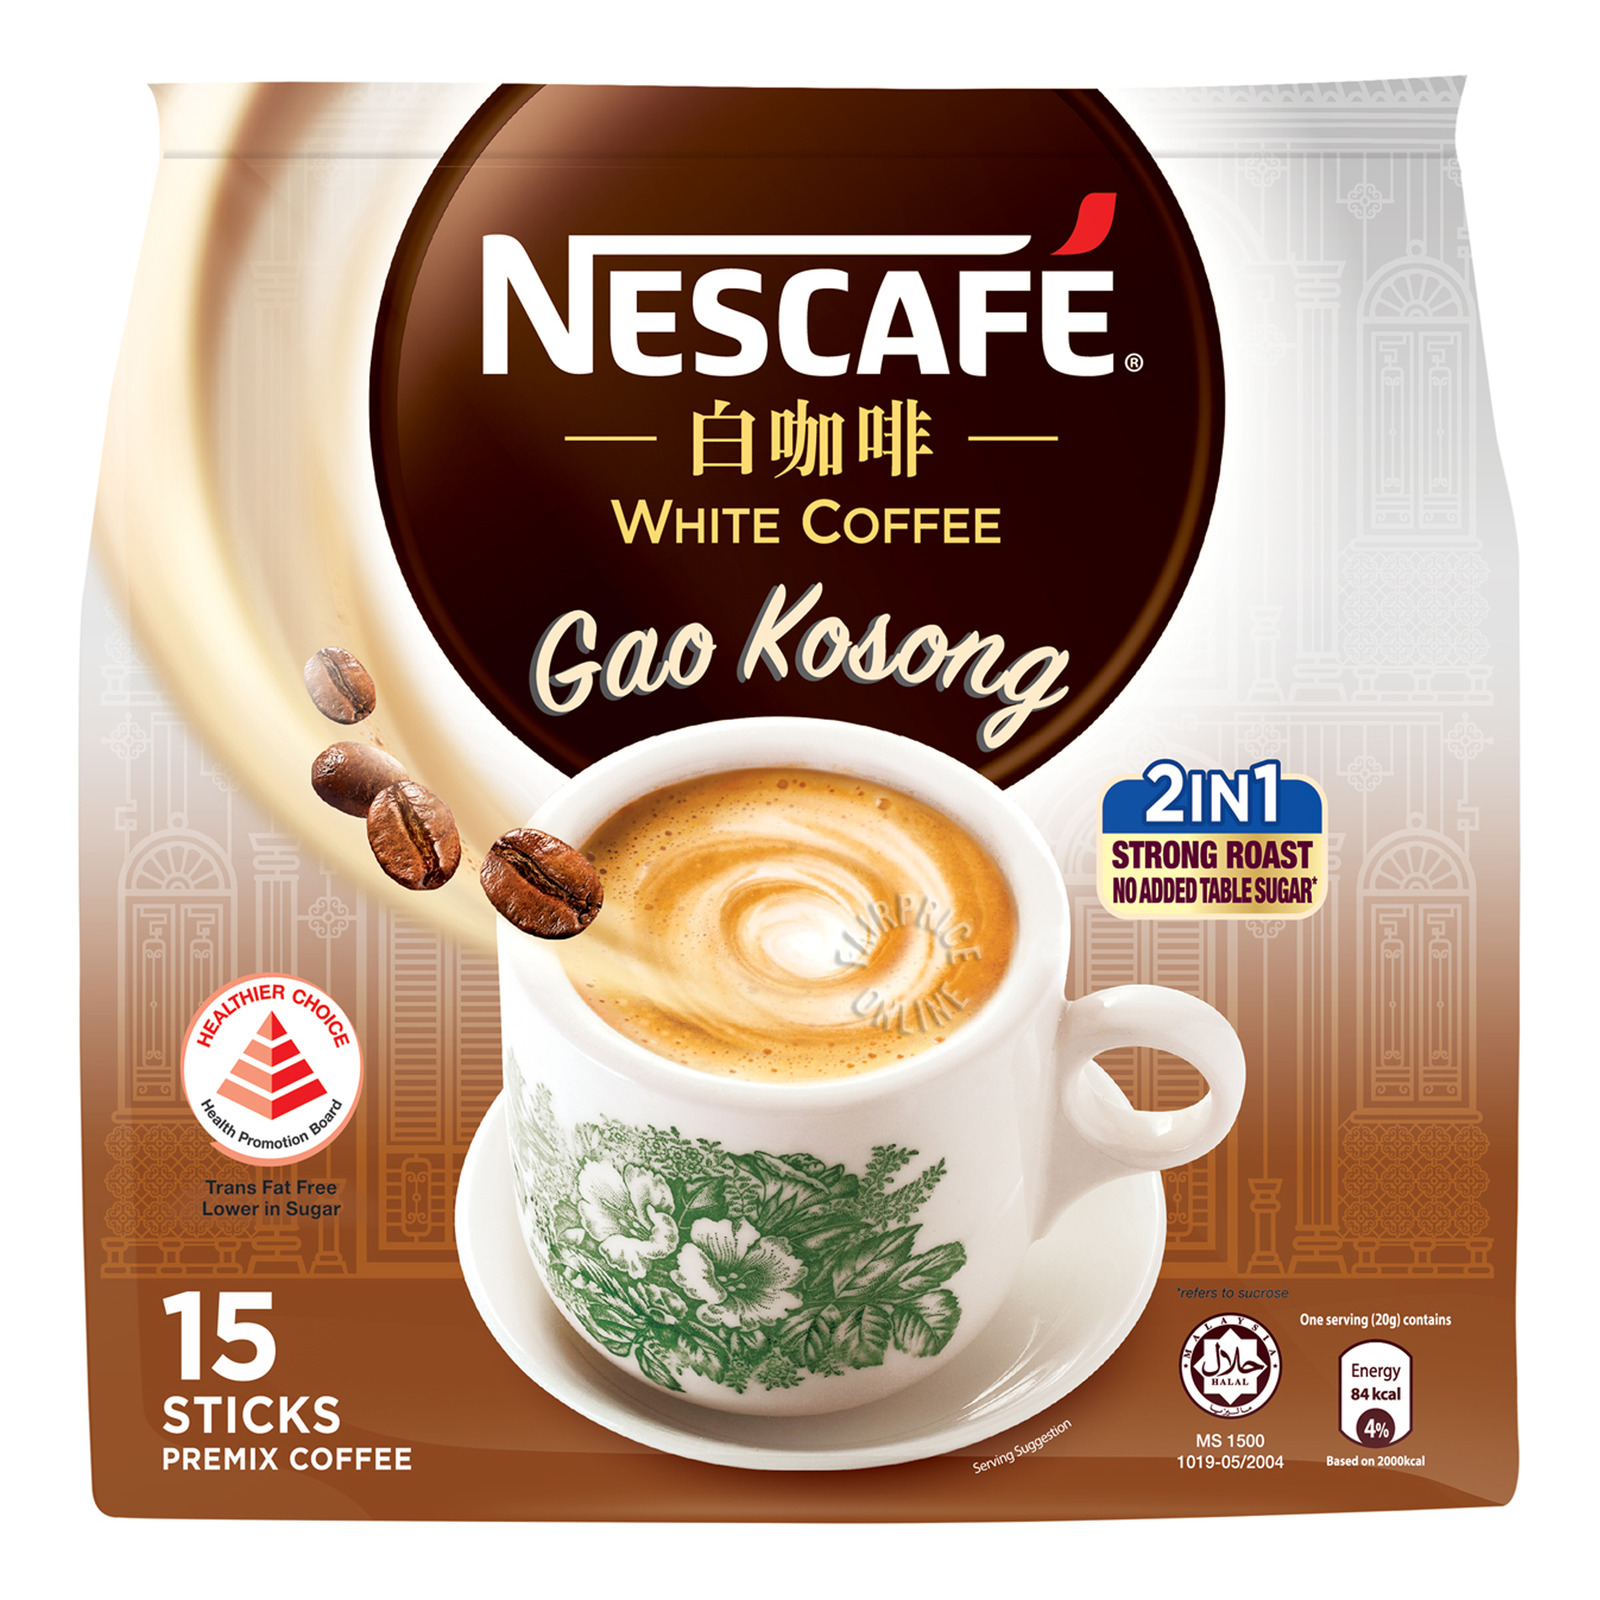 Nescafe Instant White Coffee - Gao Kosong